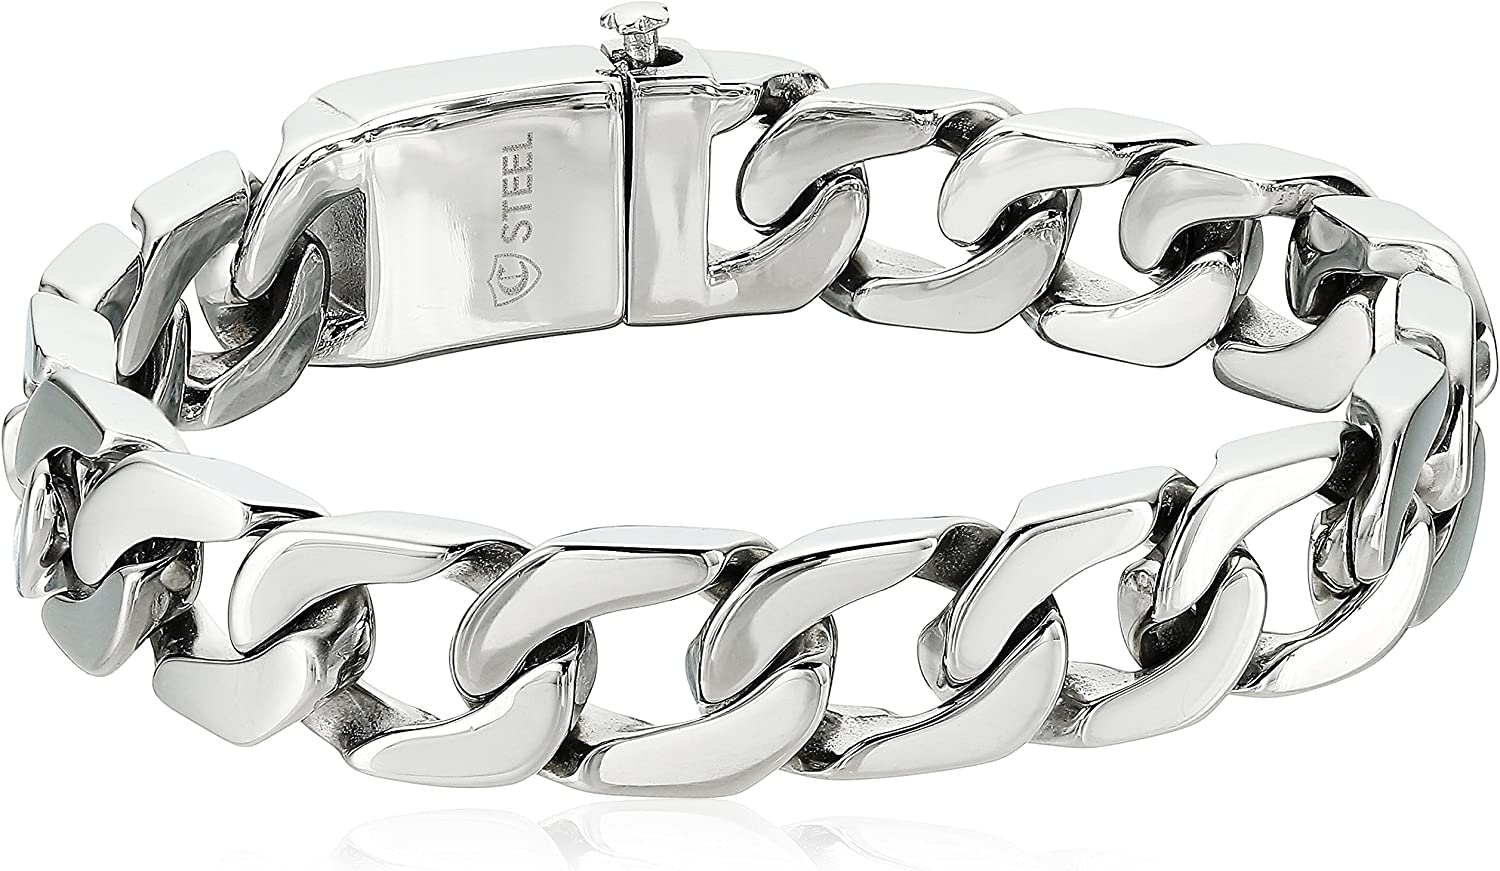 Crucible Jewelry Mens Stainless Steel Polished Box Clasp Curb Chain Bracelet -8.5-Inch (15.5 mm), White